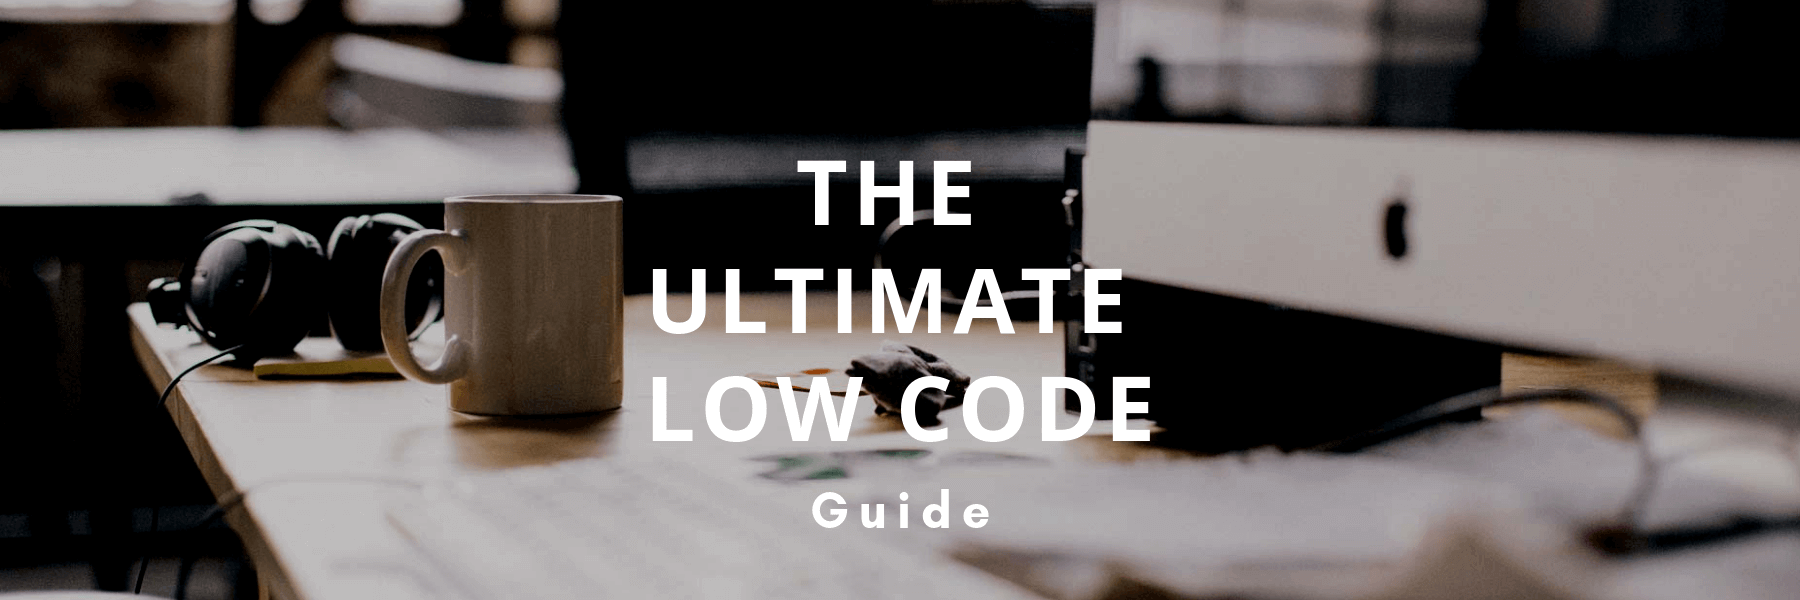 The Ultimate Low Code Giude